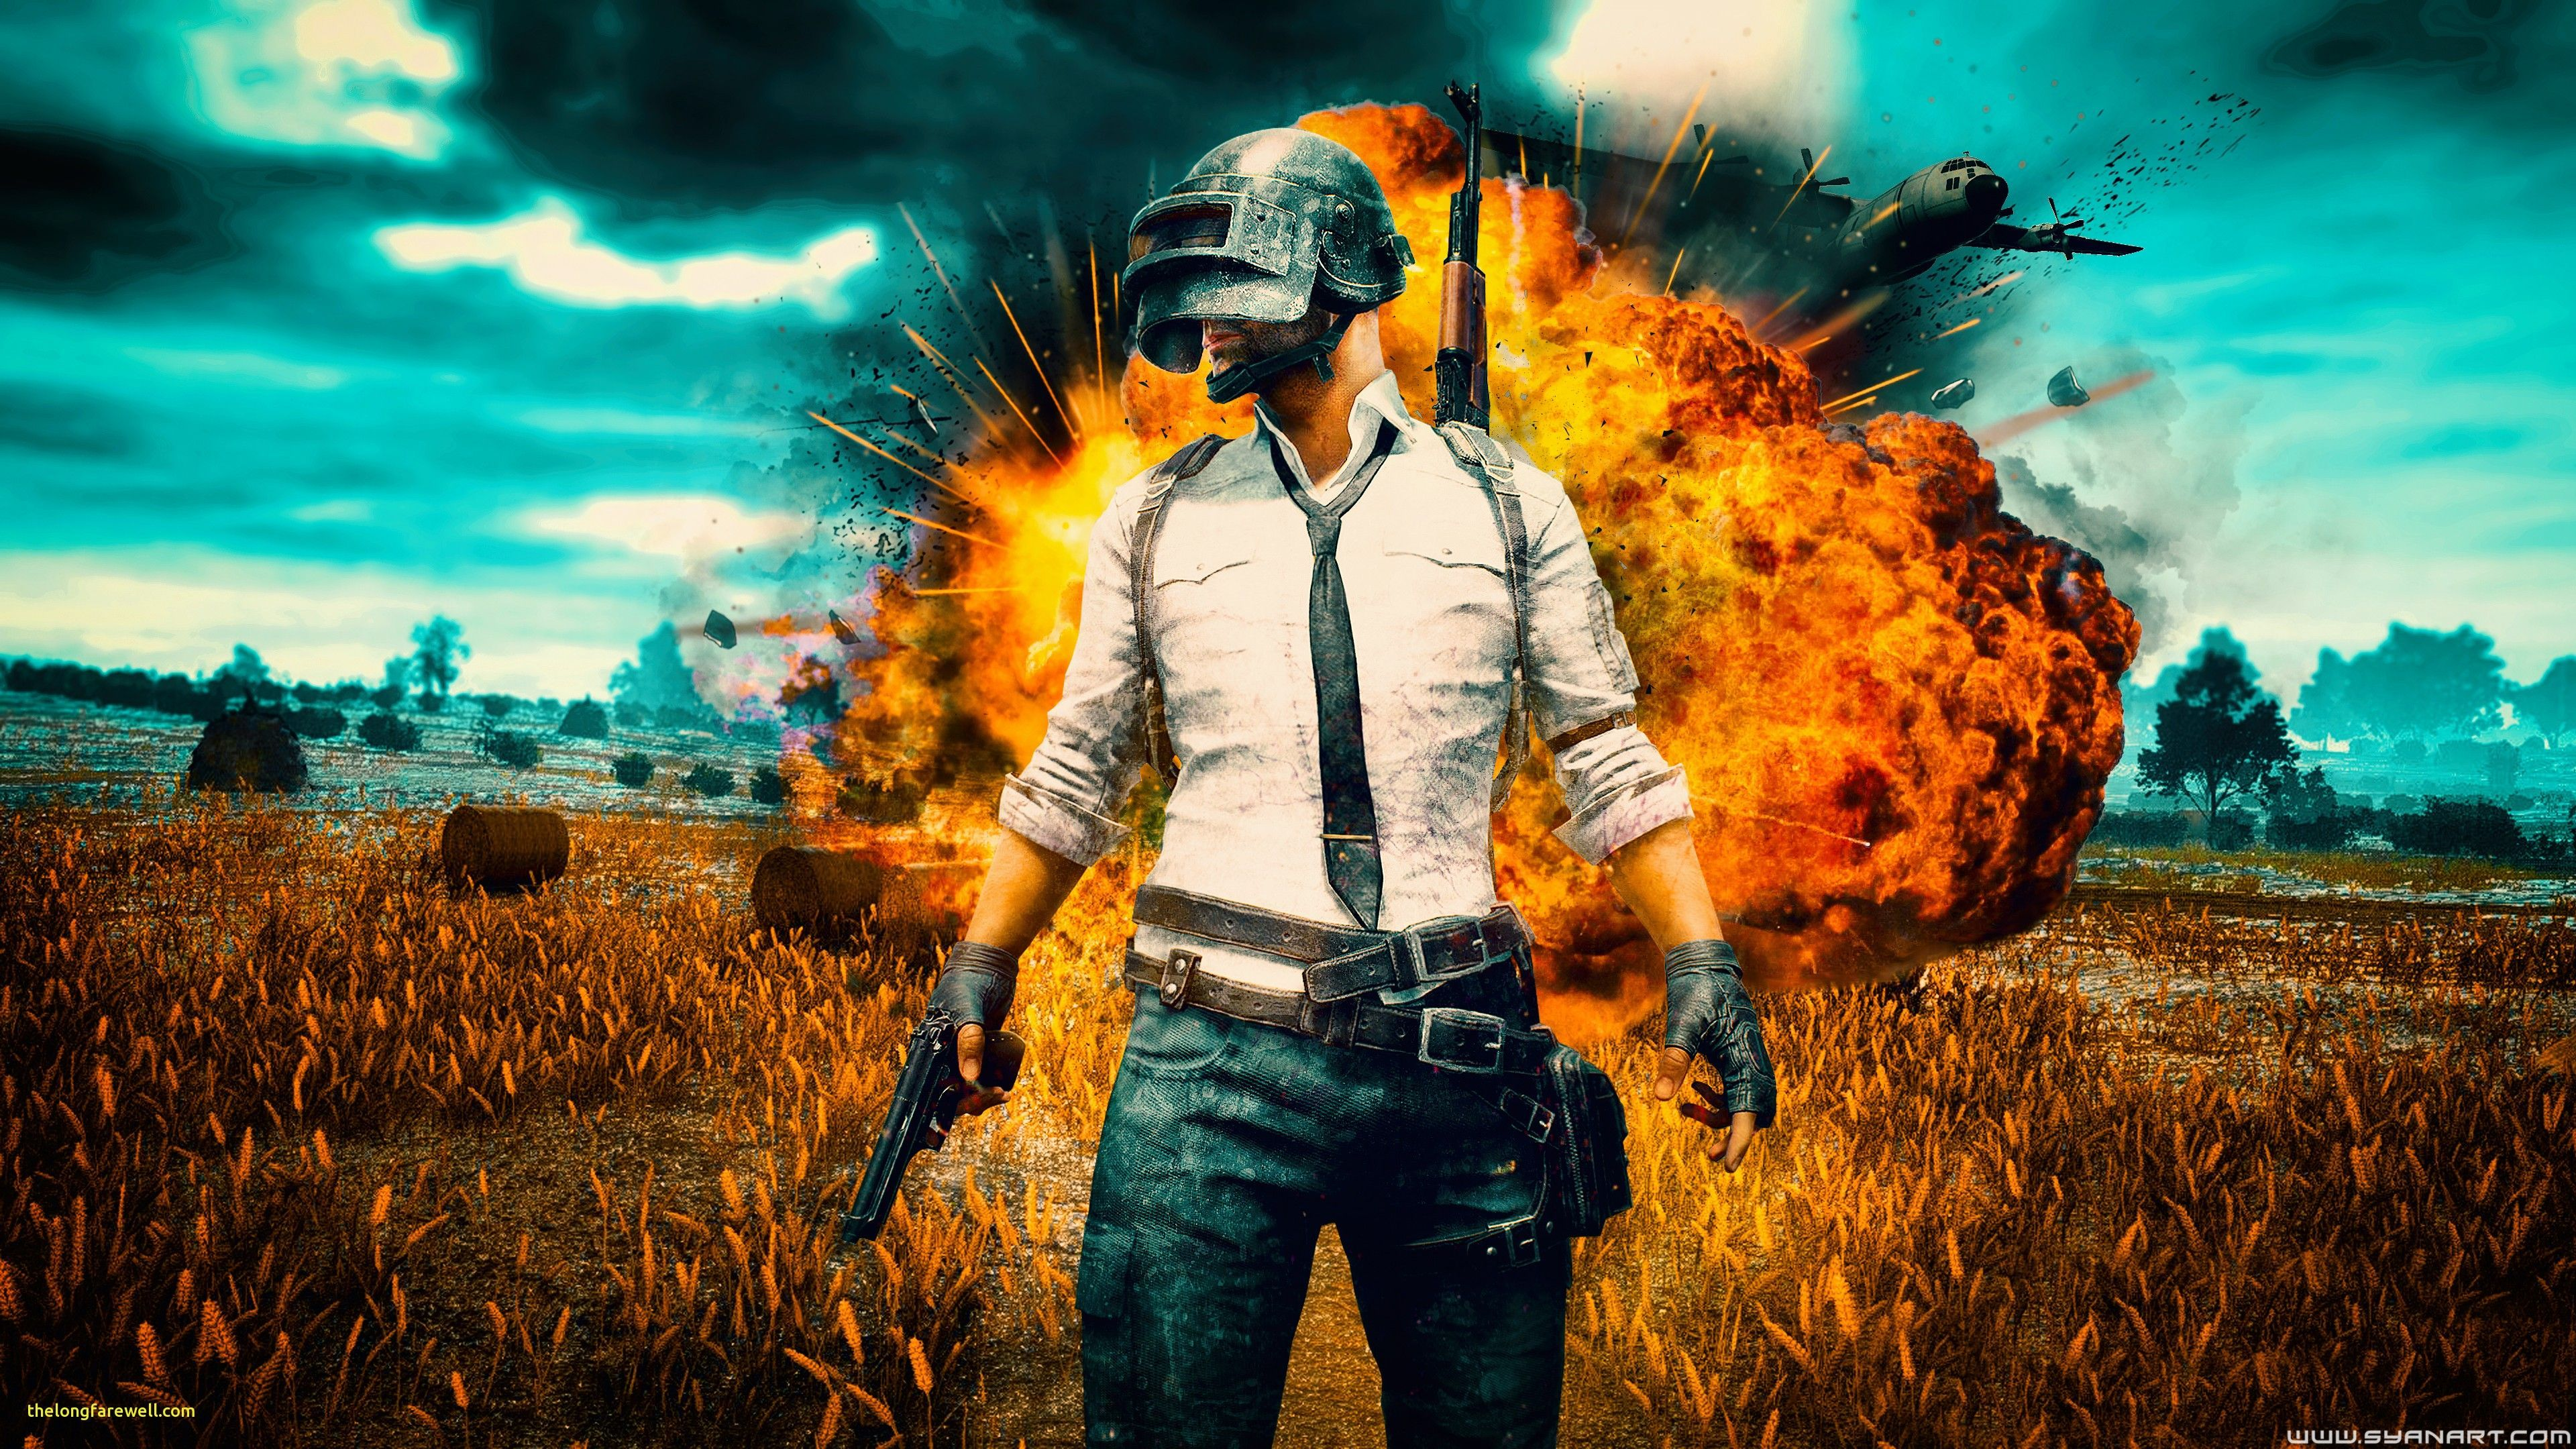 PUBG 4K Game Wallpapers   Top PUBG 4K Game Backgrounds 3840x2160